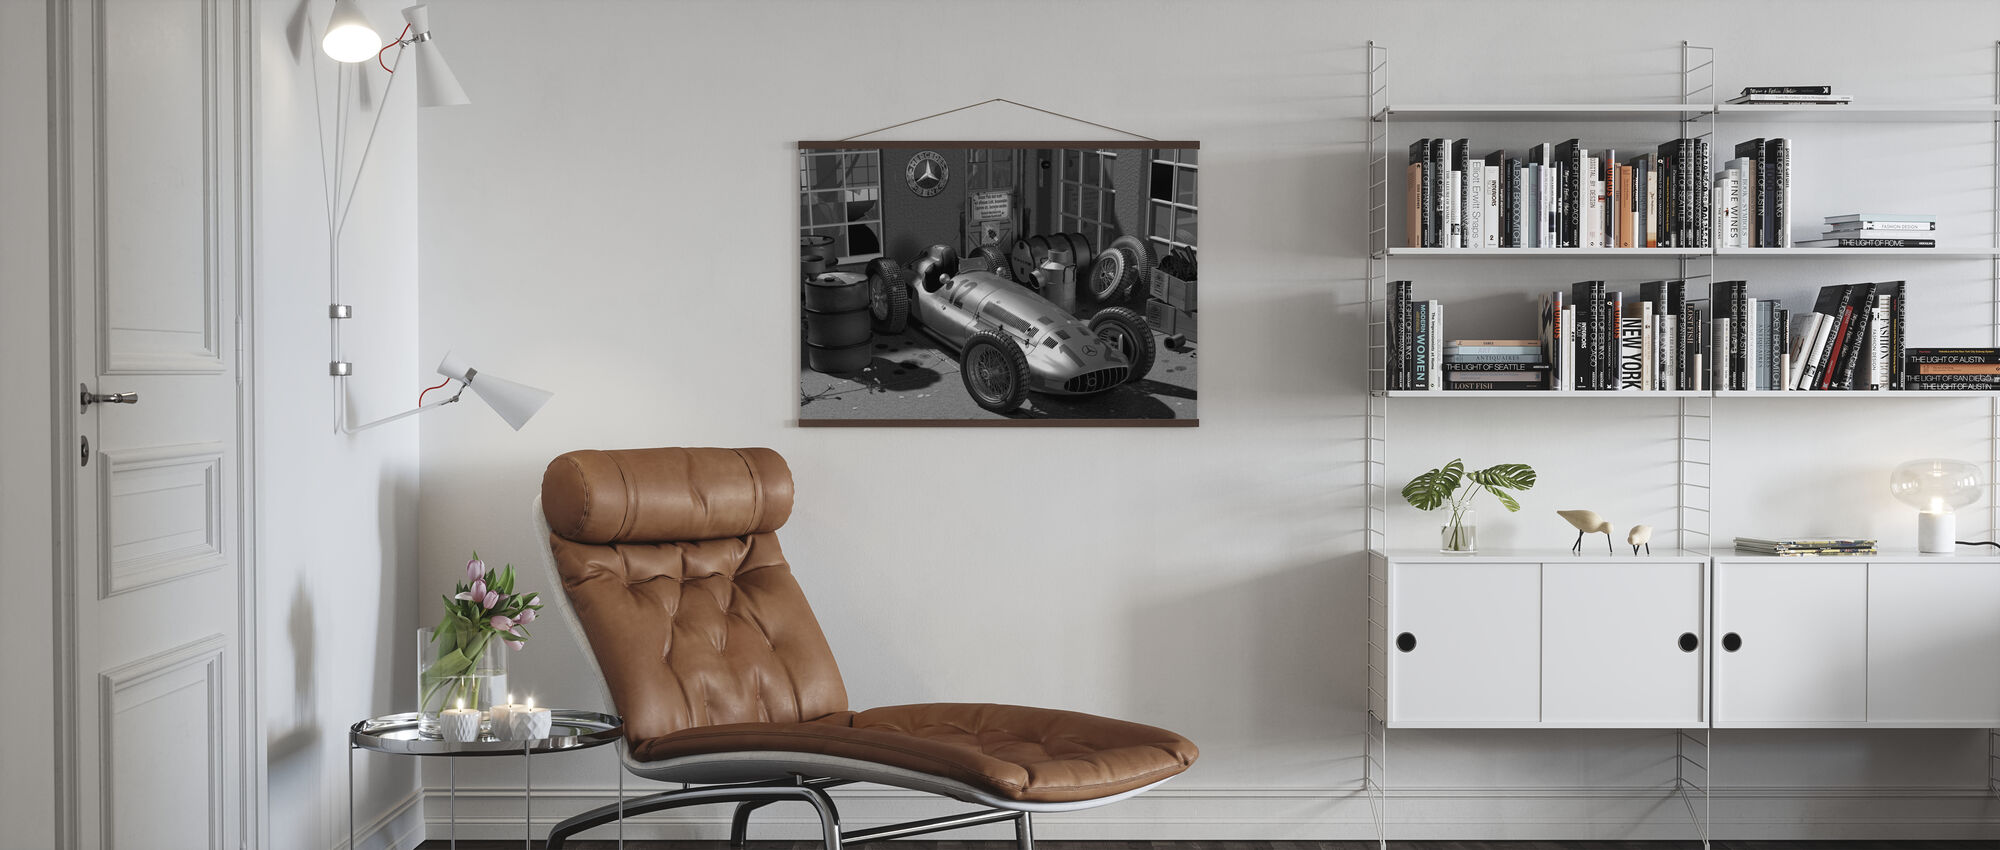 Trolley BW - Poster - Living Room